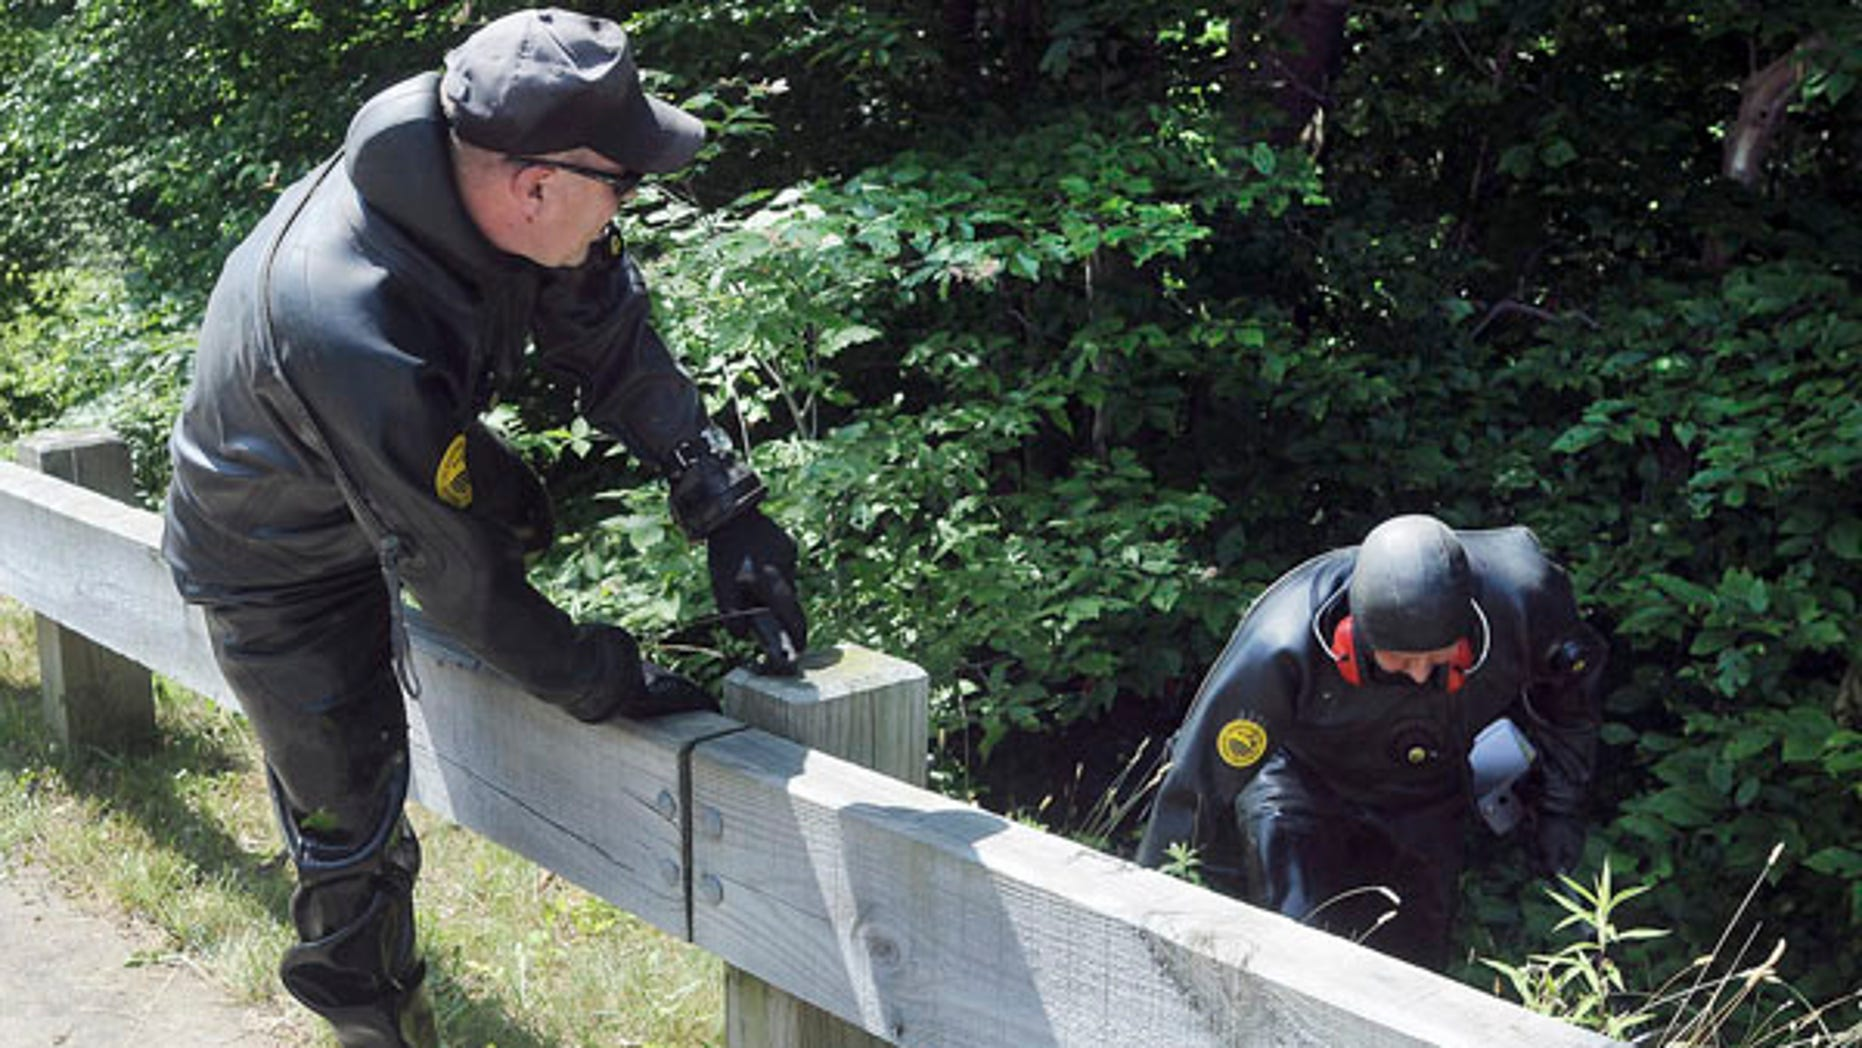 June 24, 2013: Law enforcement officers wearing wetsuits emerge from bushes during a search for evidence along a road near the home of New England Patriot's NFL football player Aaron Hernandez in North Attleborough, Mass.